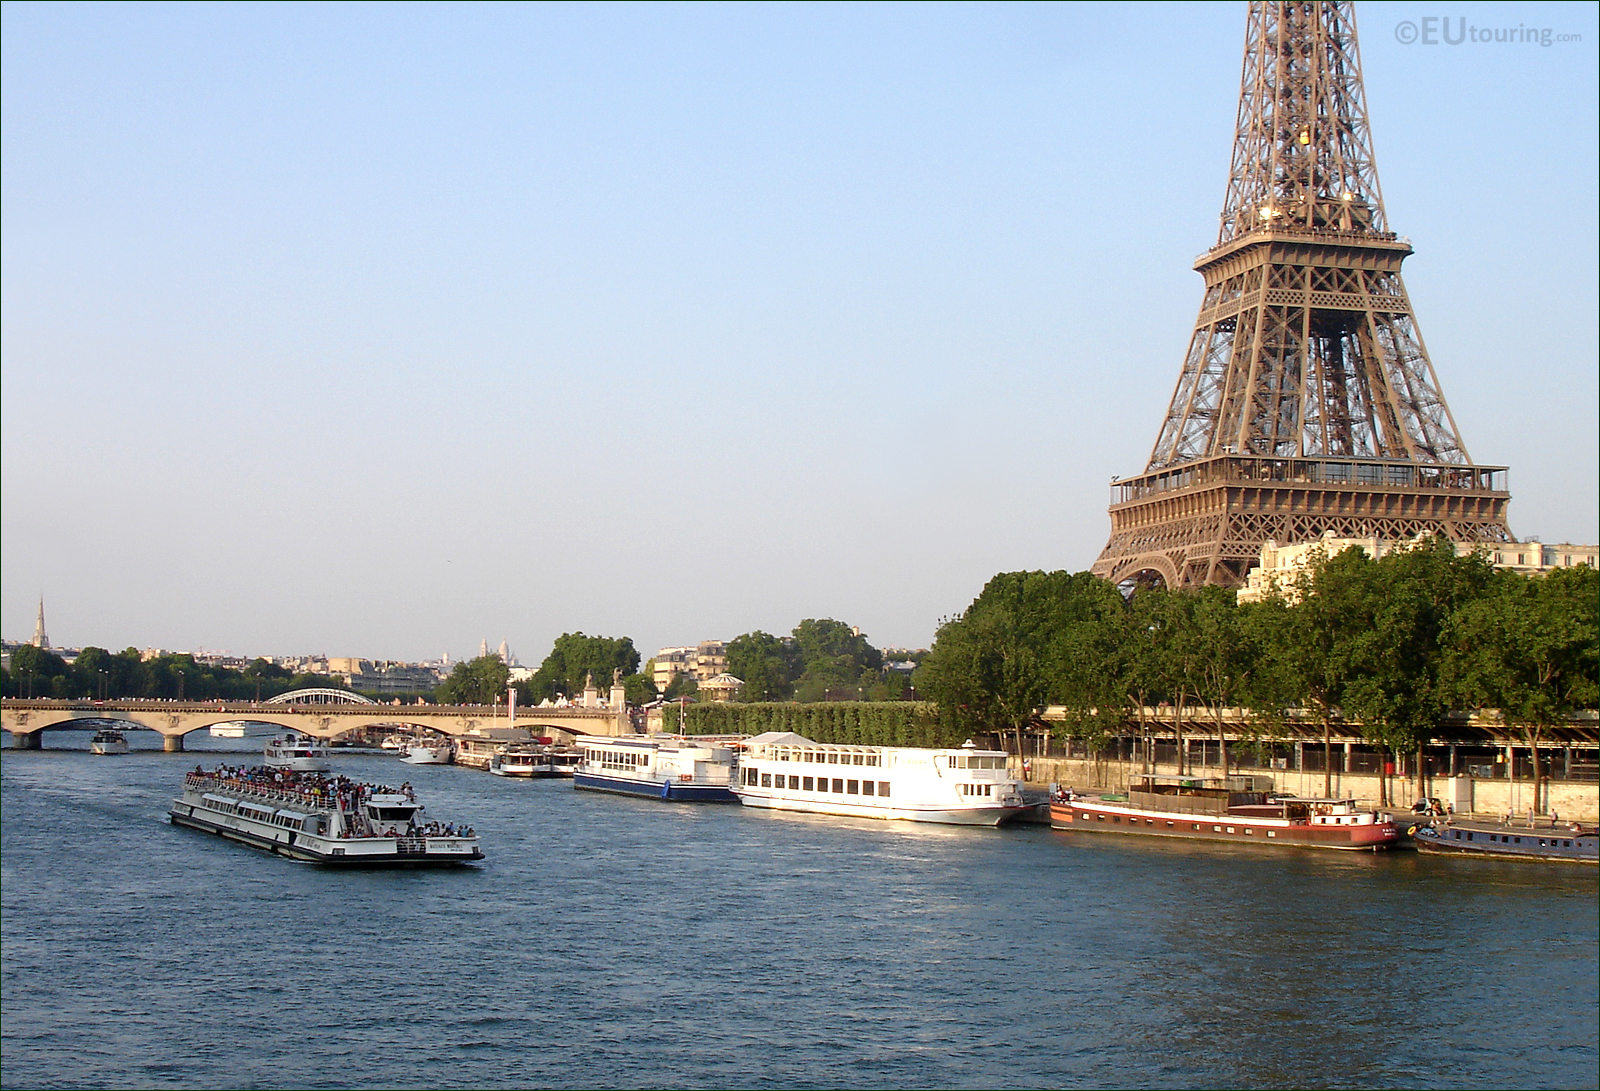 photo images of bateaux mouches cruise boats in paris image 6. Black Bedroom Furniture Sets. Home Design Ideas